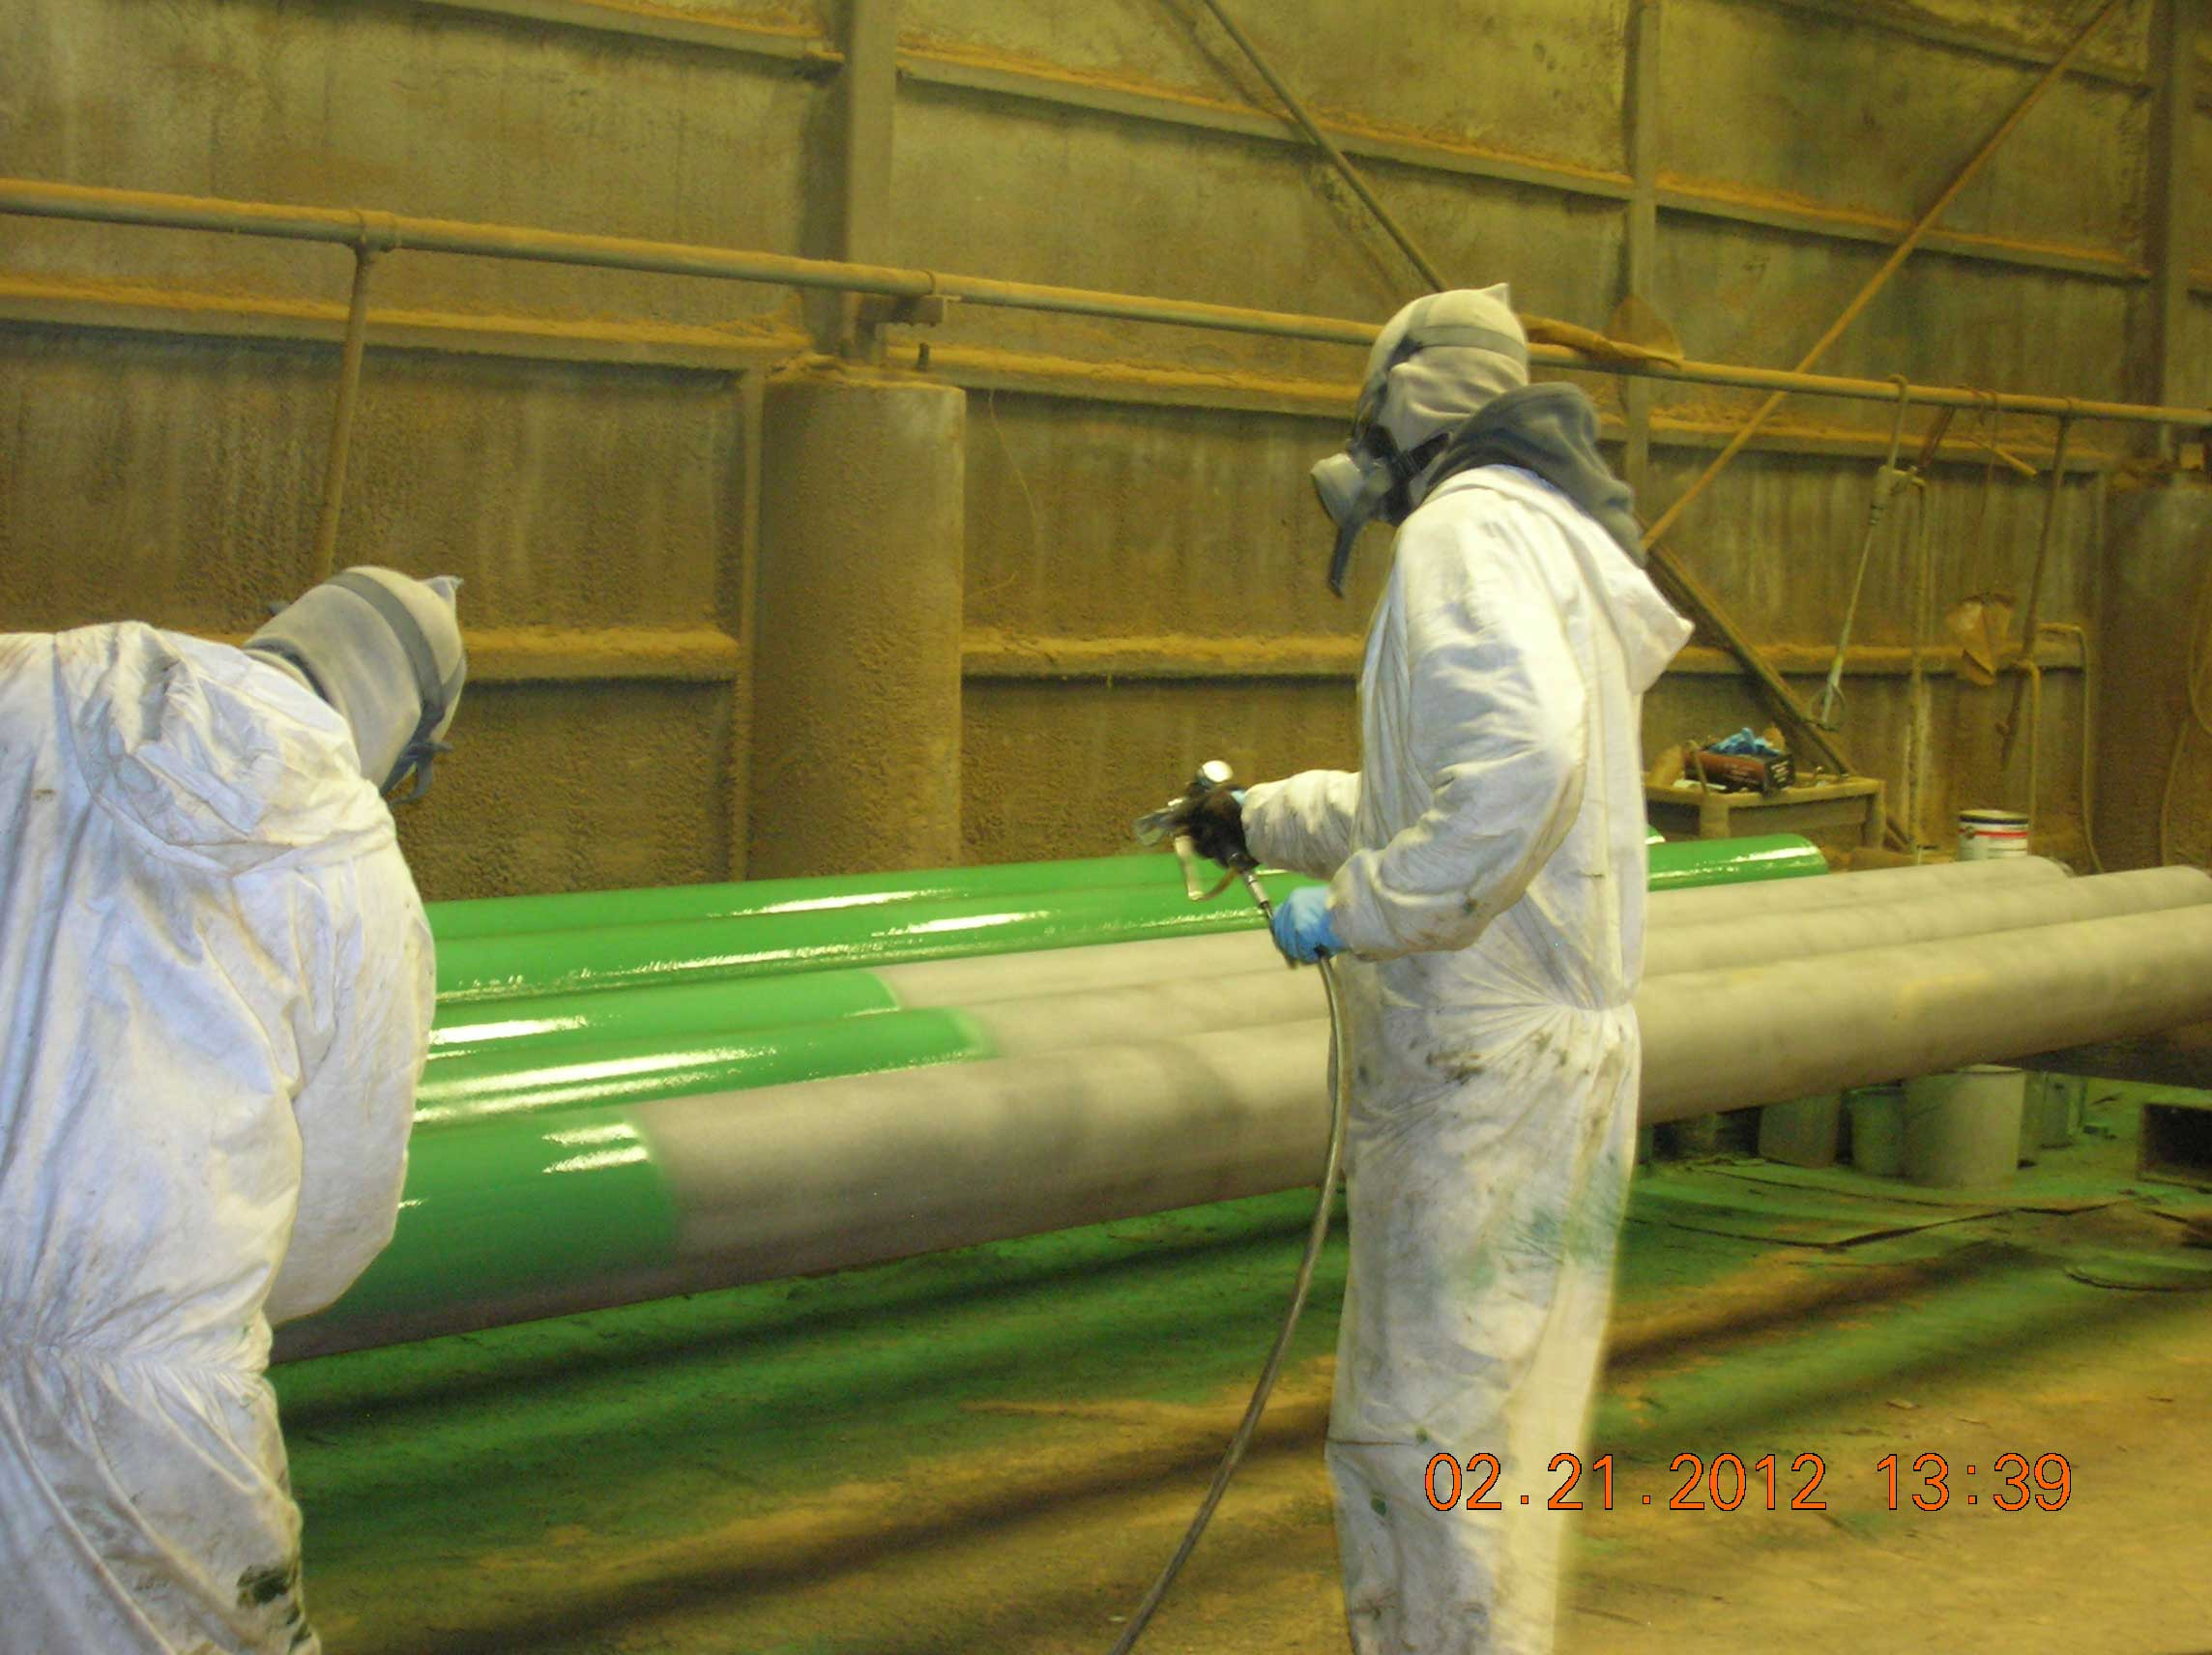 Superior painting and coating services…We've got you covered